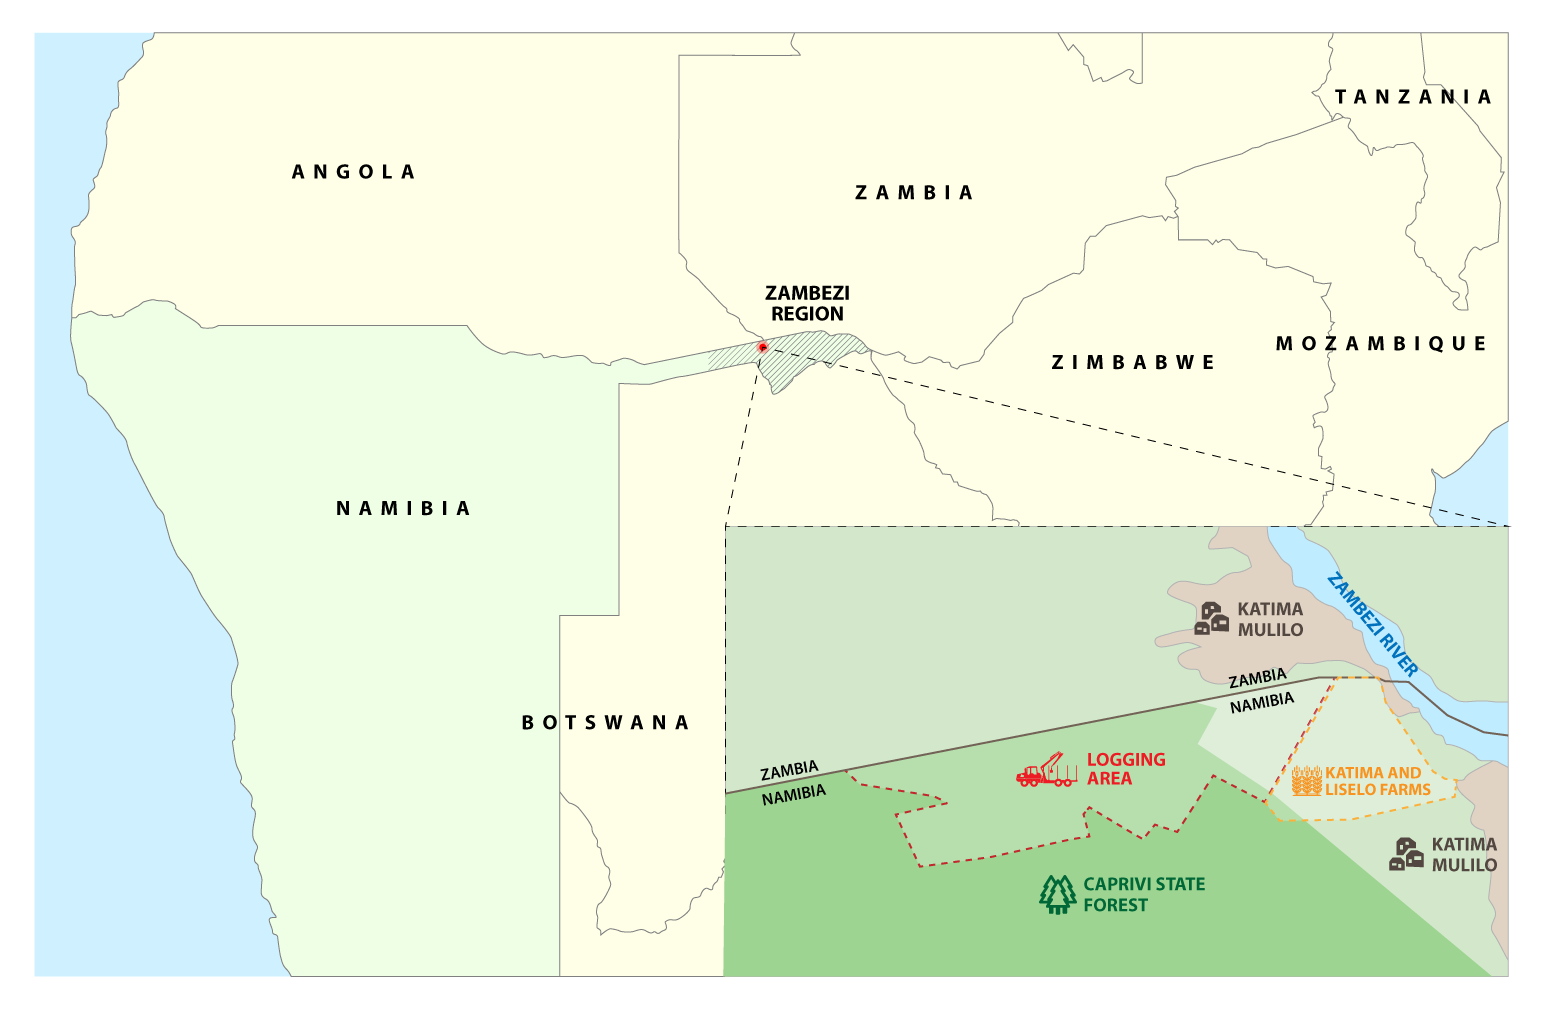 An analysis of satellite images shows where loggers crossed deep into the Caprivi State Forest. The park is in Namibia's Zambezi region. (Click to enlarge. Credit: Edin Pasovic)